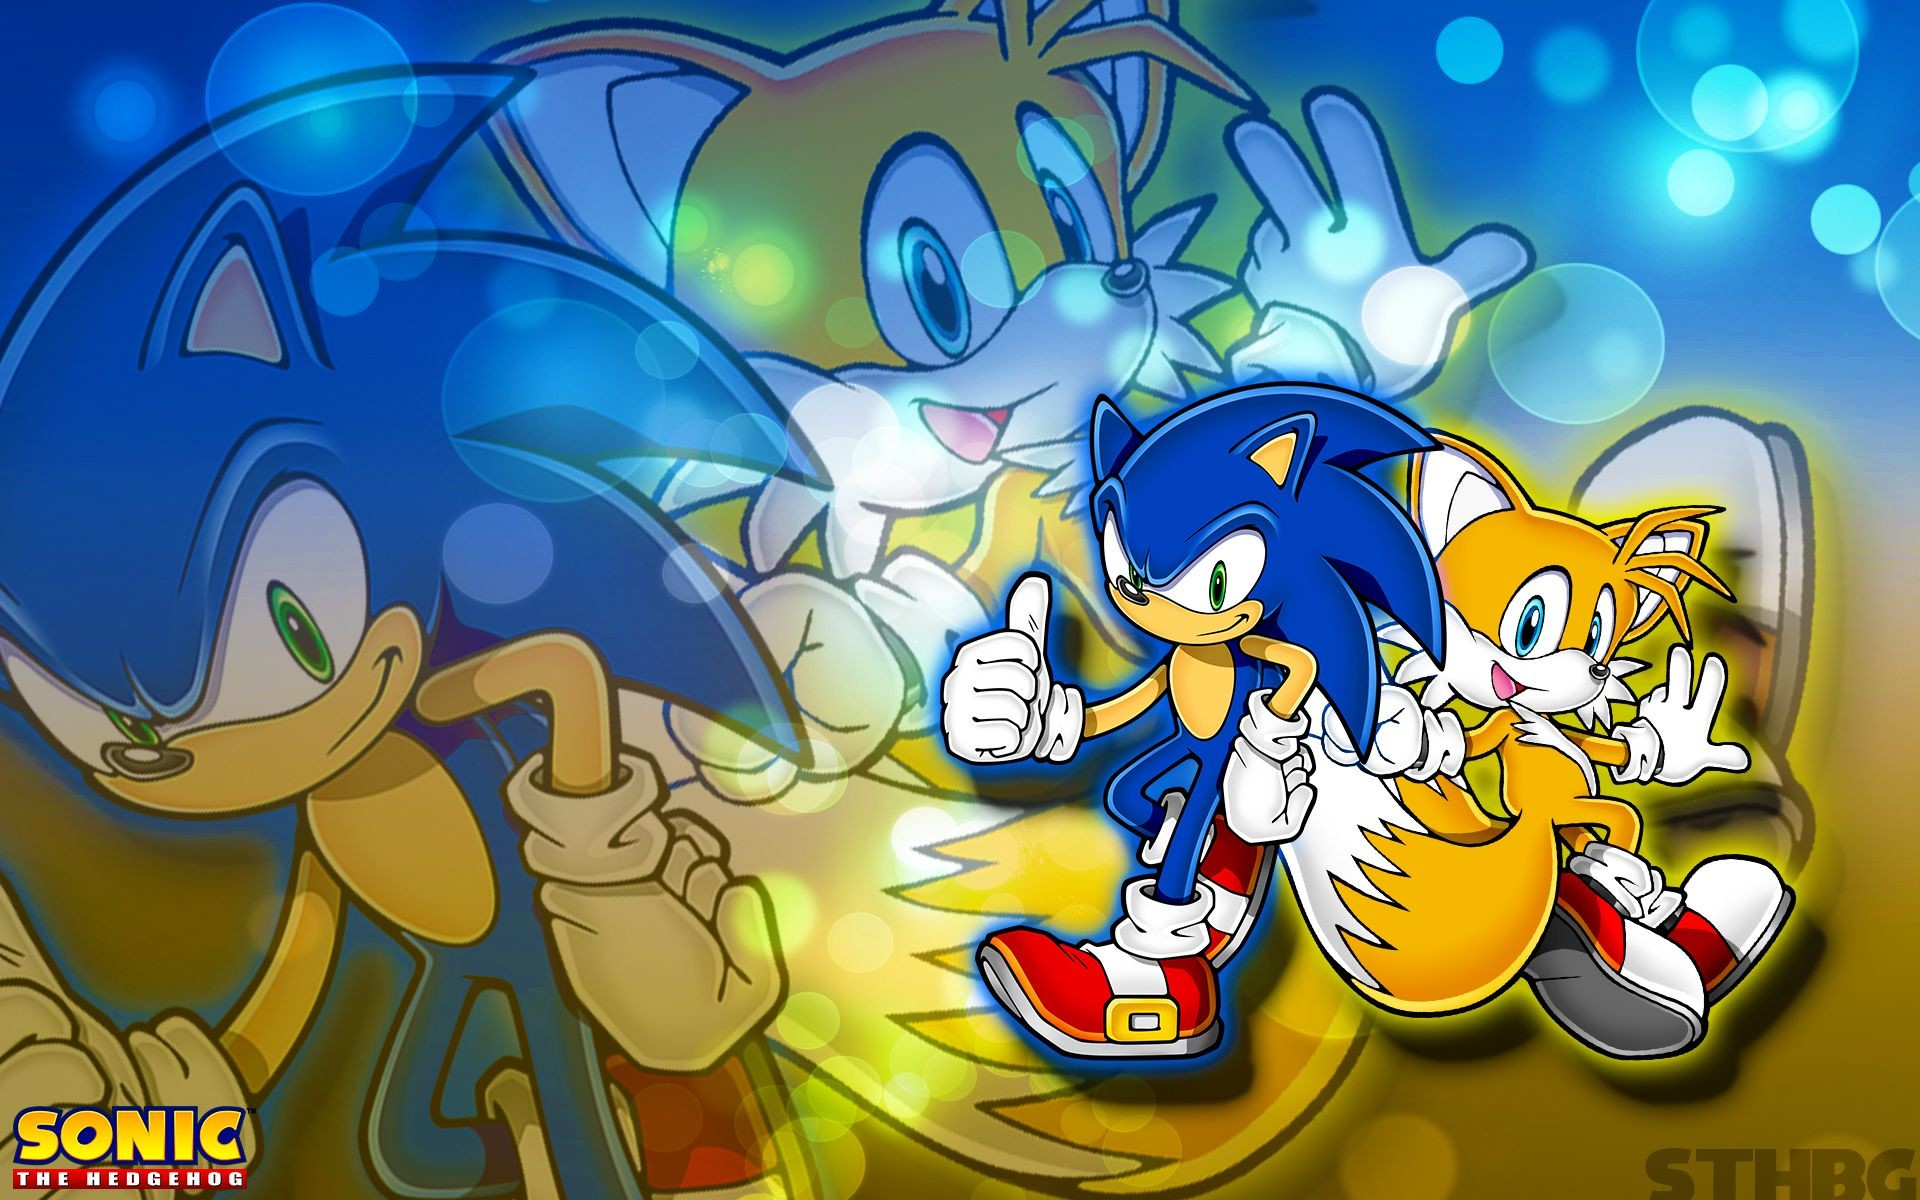 Sonic And Tails Wallpaper by SonicTheHedgehogBG on DeviantArt